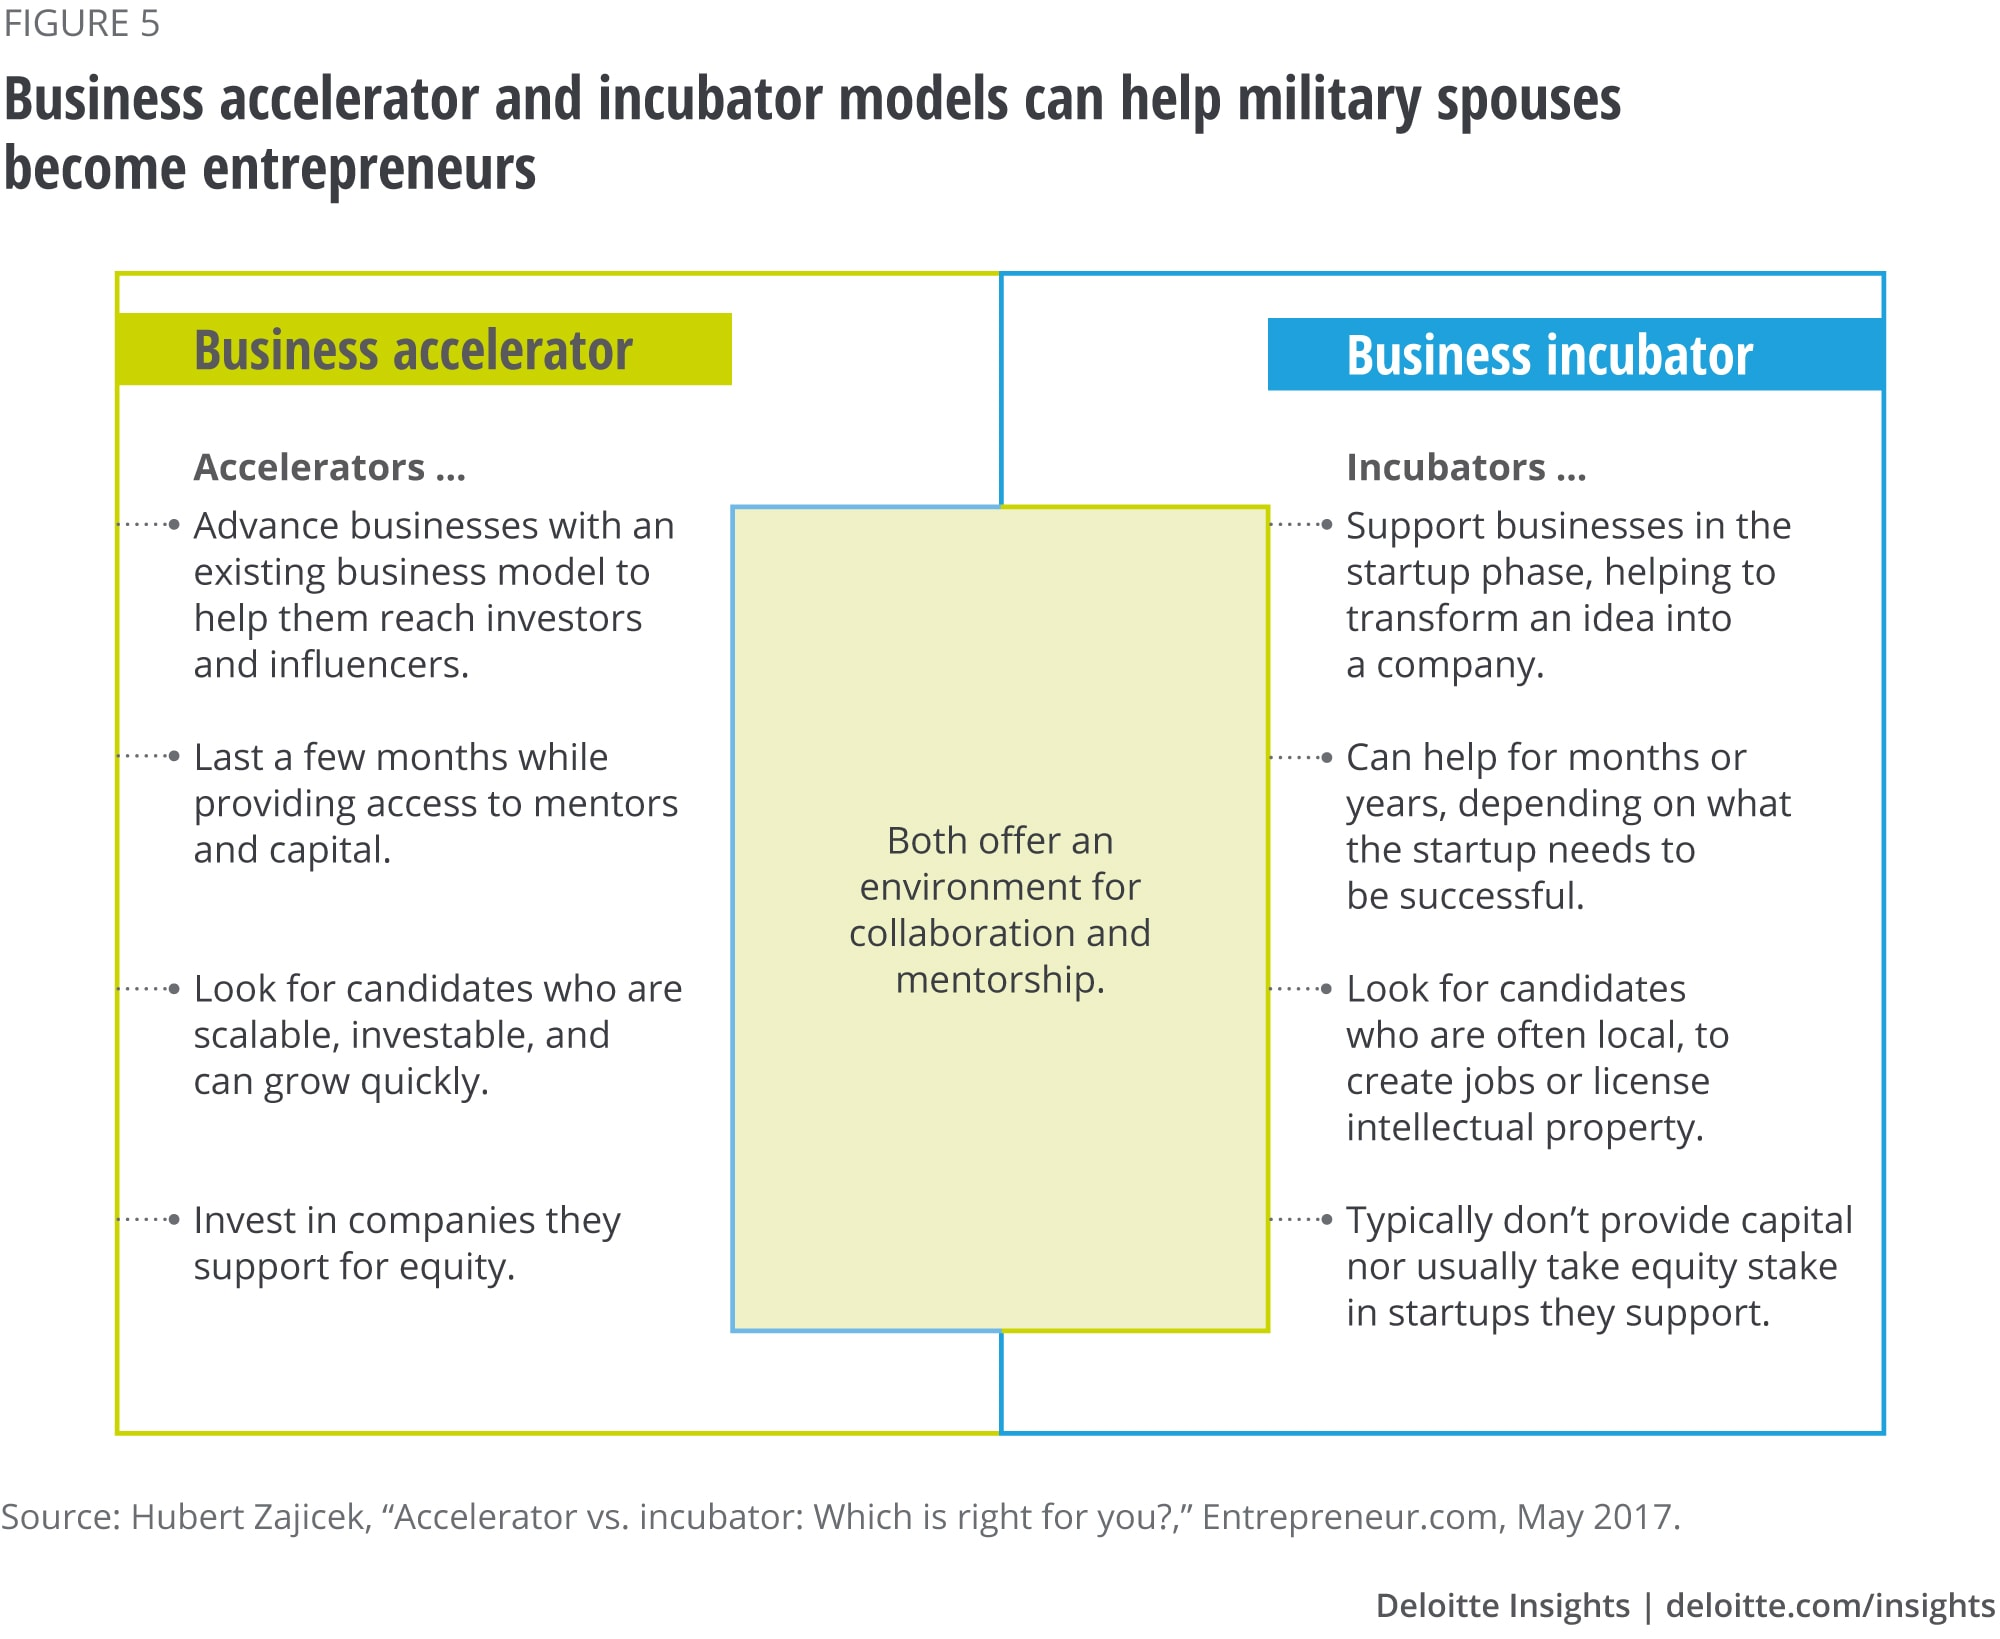 Business accelerators and incubators can help military spouses become entrepreneurs